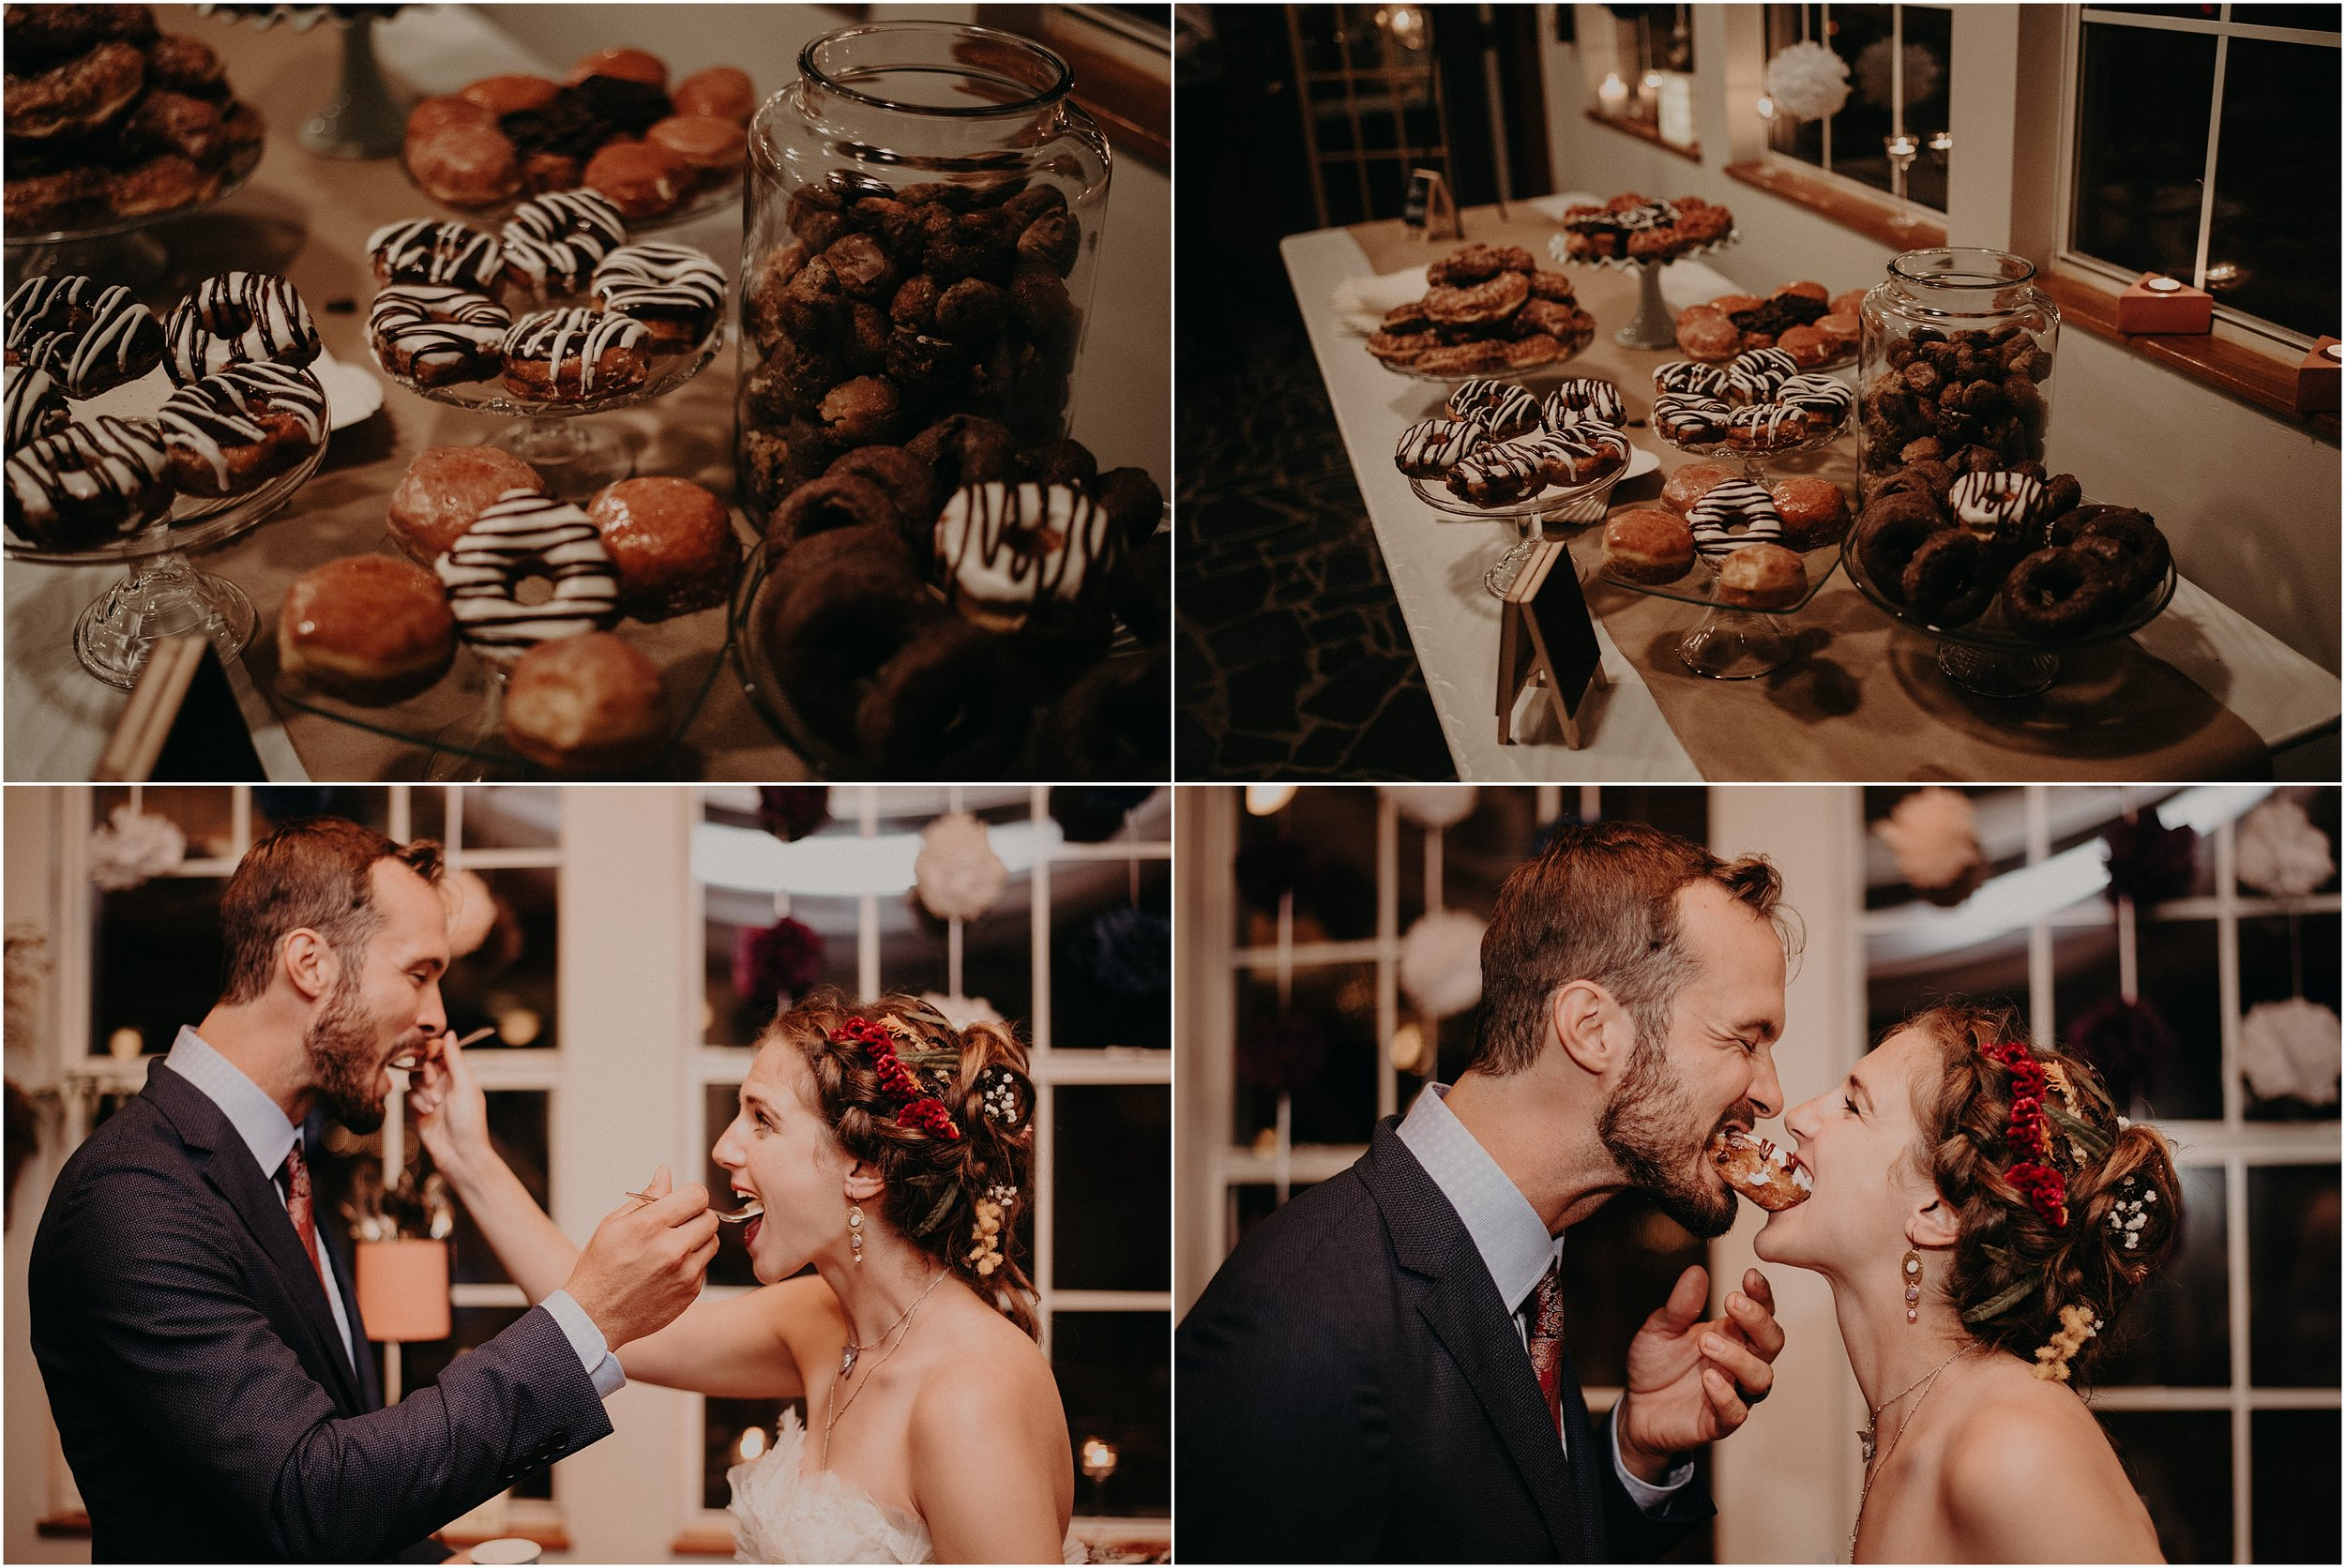 The couple had a donut and ice cream dessert bar at their reception